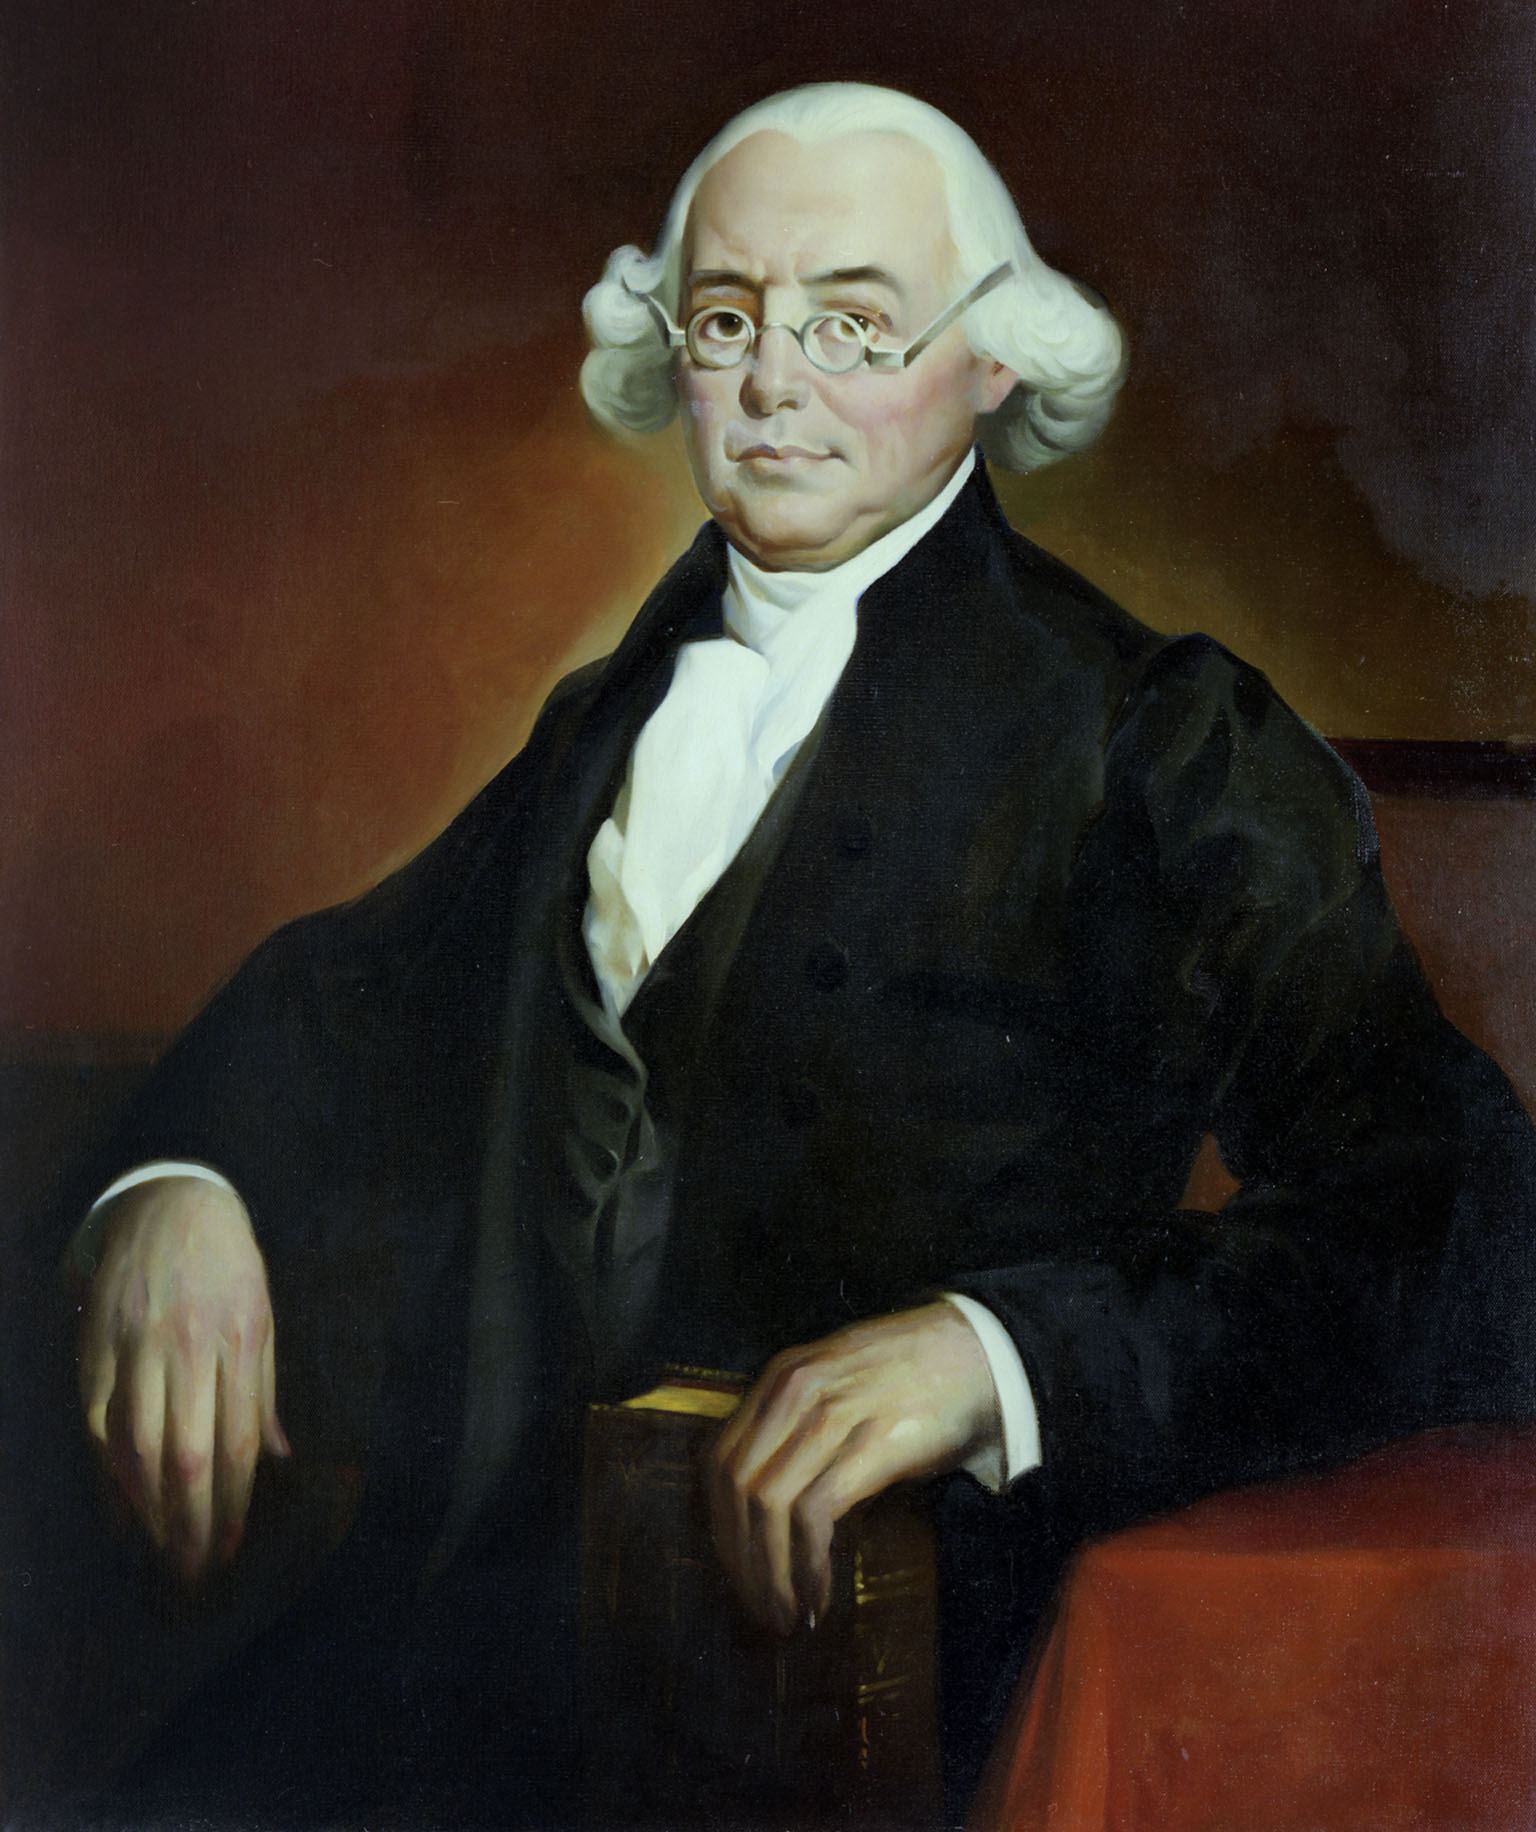 founding father 2018-7-5  the founding fathers are the leaders who founded the united states,  and the last surviving founding father was james madison contents.